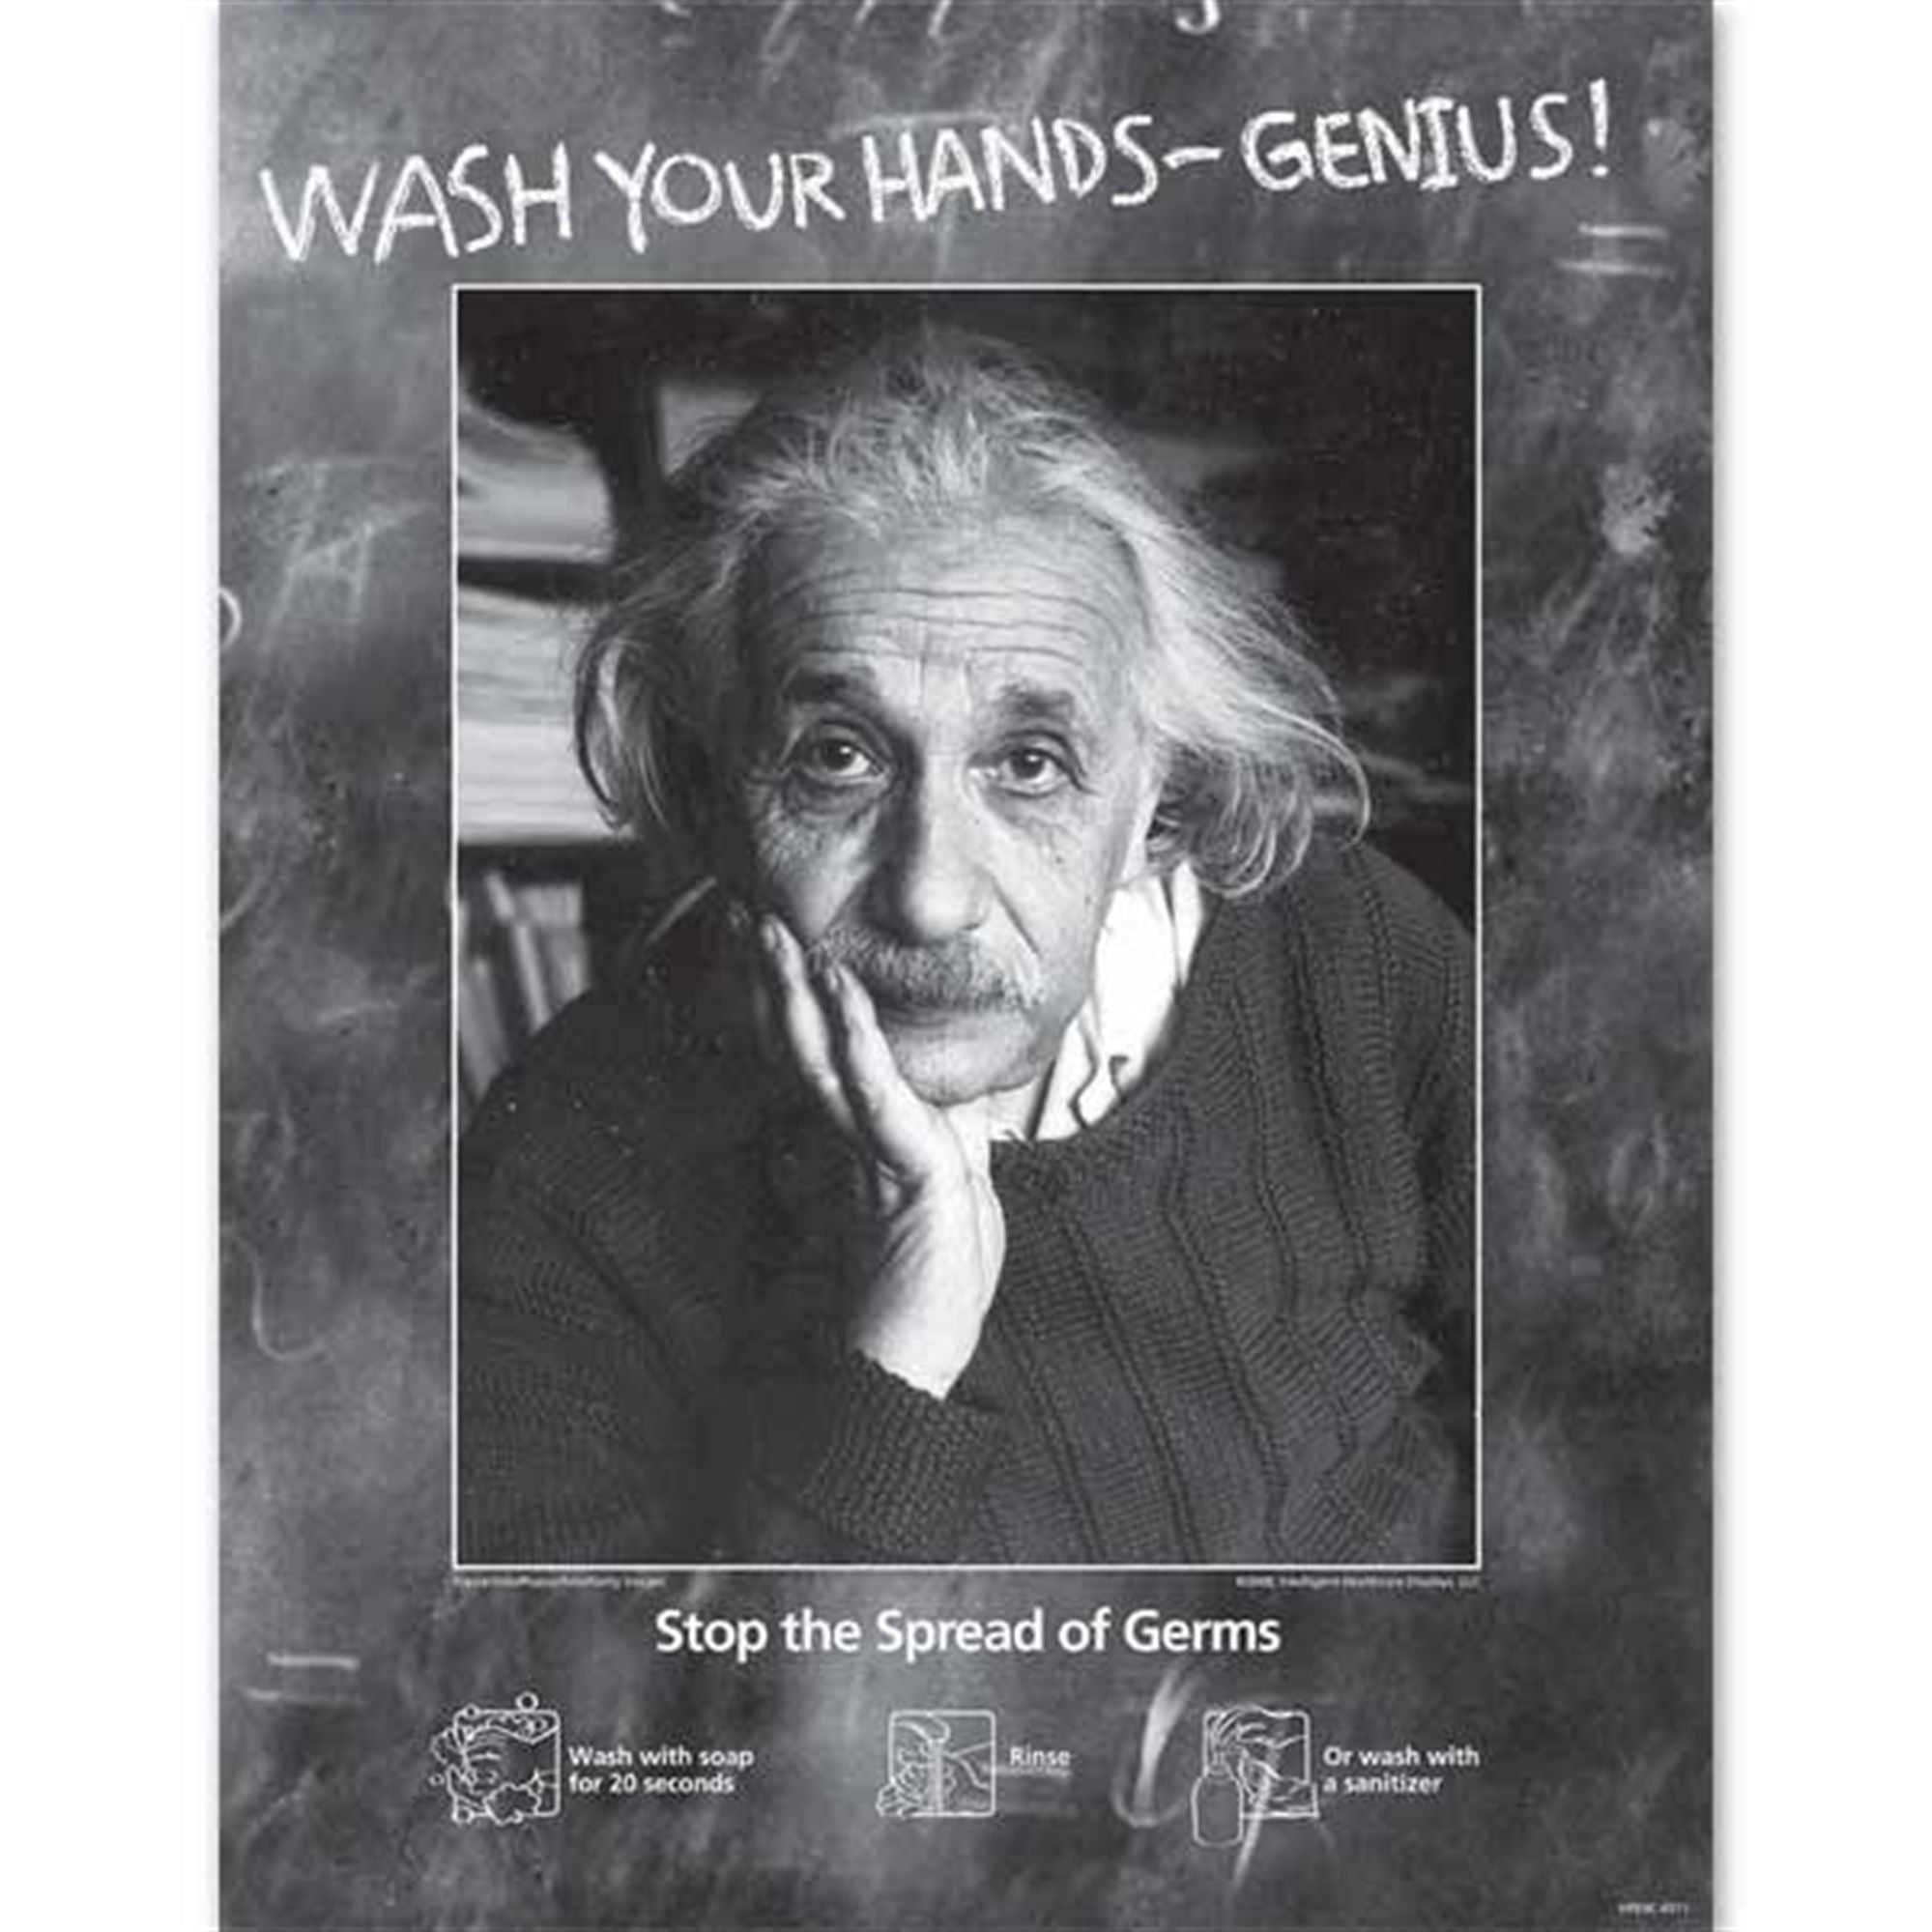 Einstein-Themed Hand Hygiene Poster